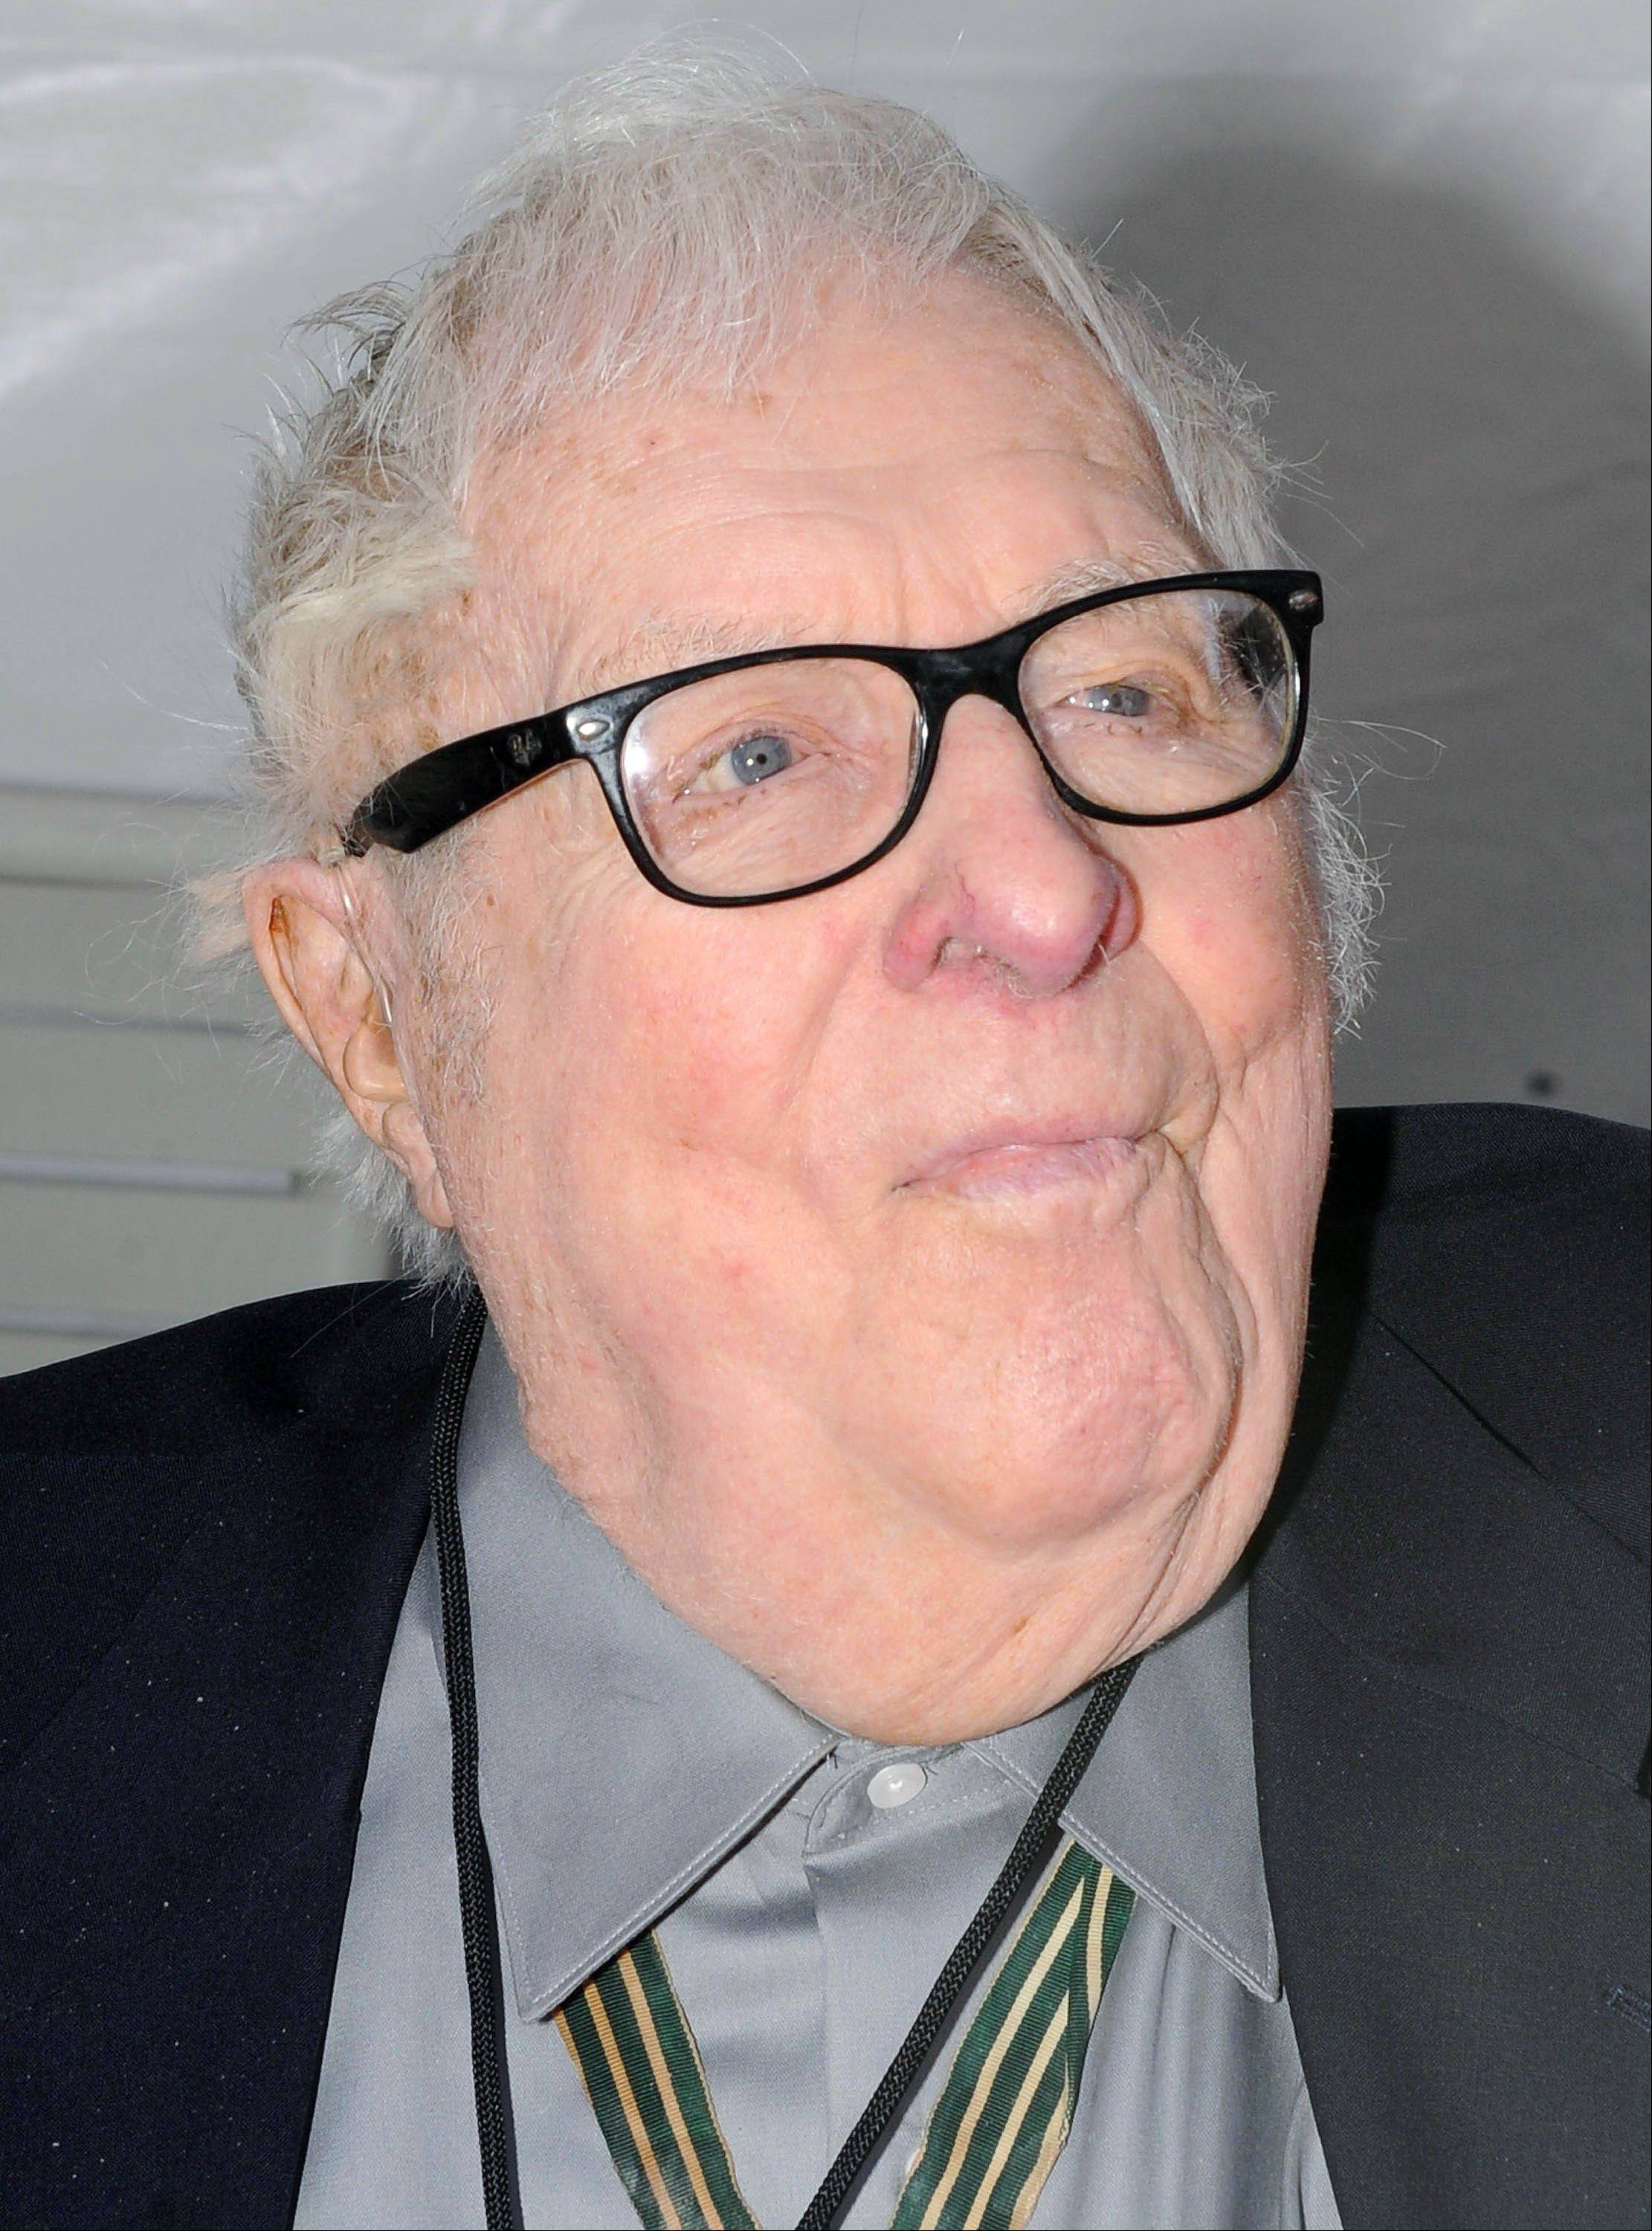 Author Ray Bradbury, who wrote everything from science-fiction and mystery to humor, died Tuesday in Southern California. He was 91.